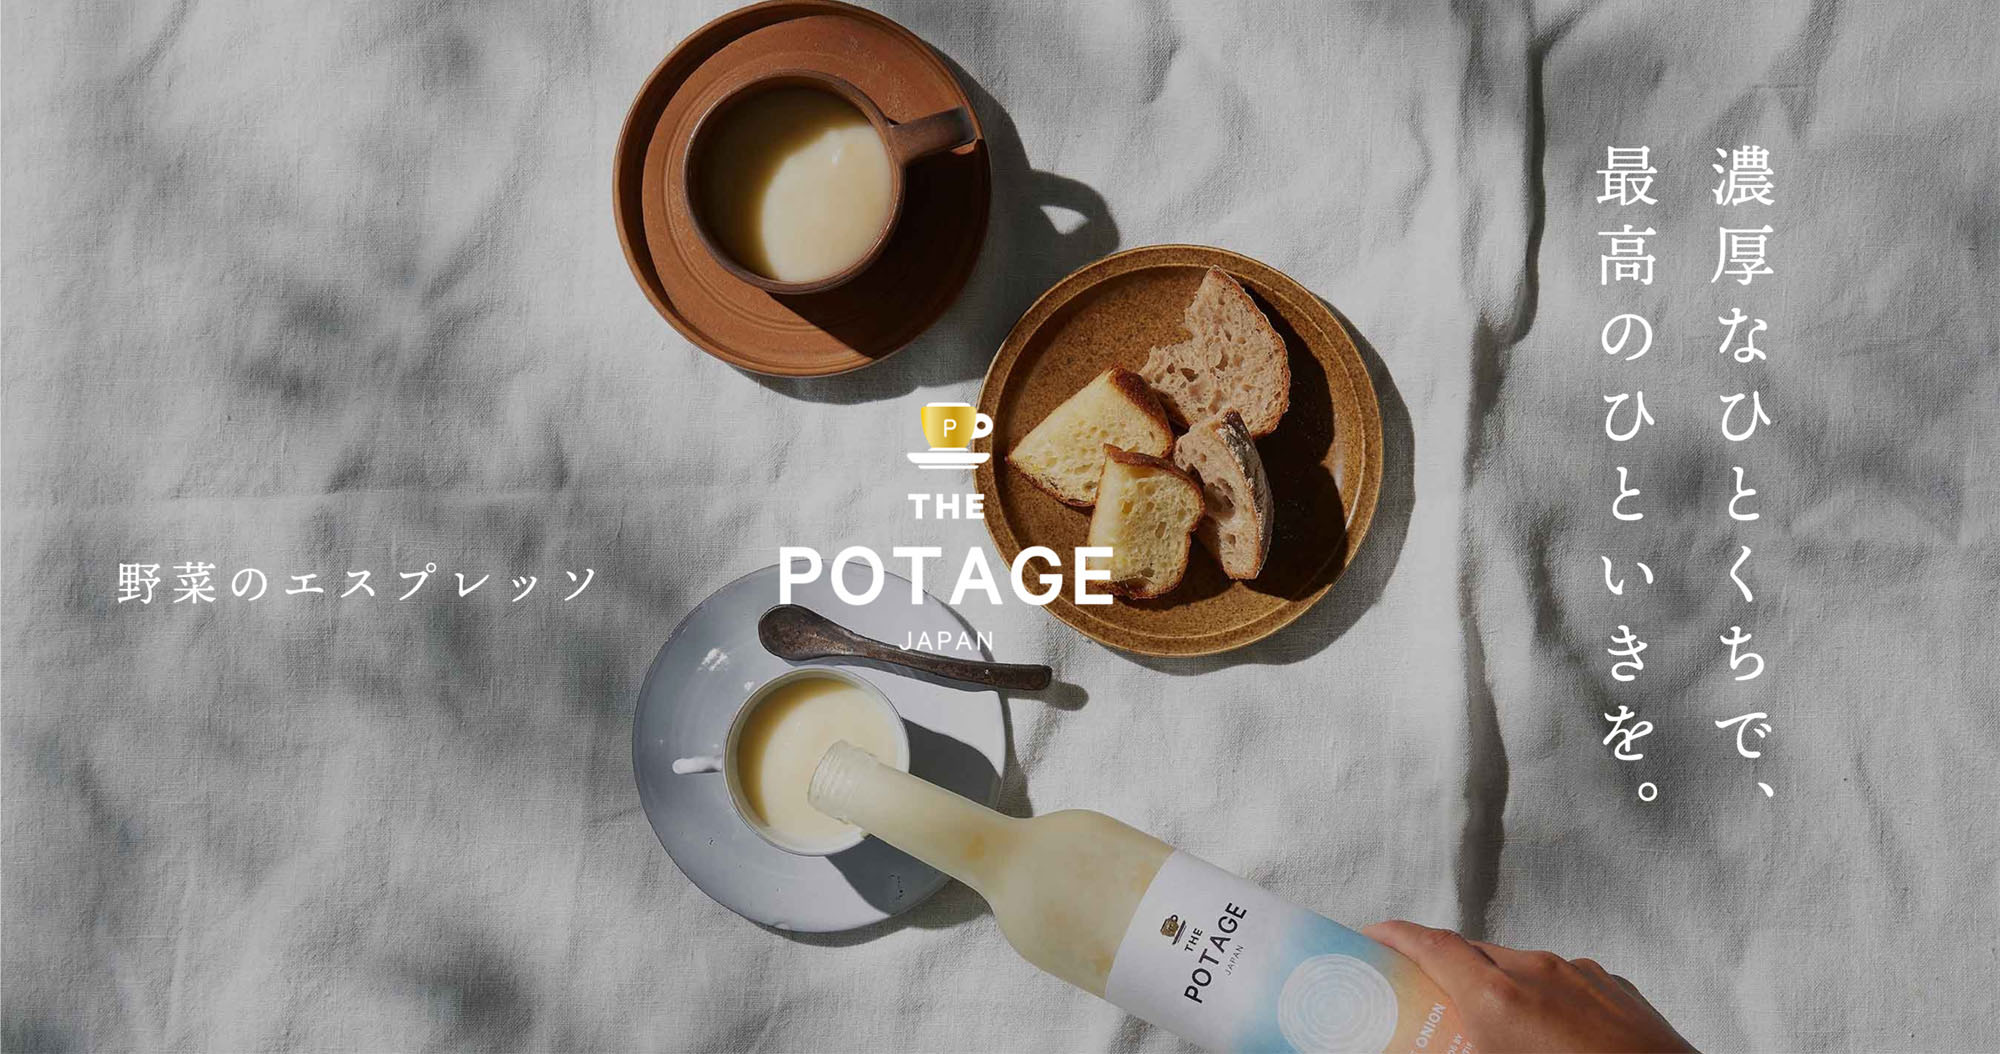 thepotage